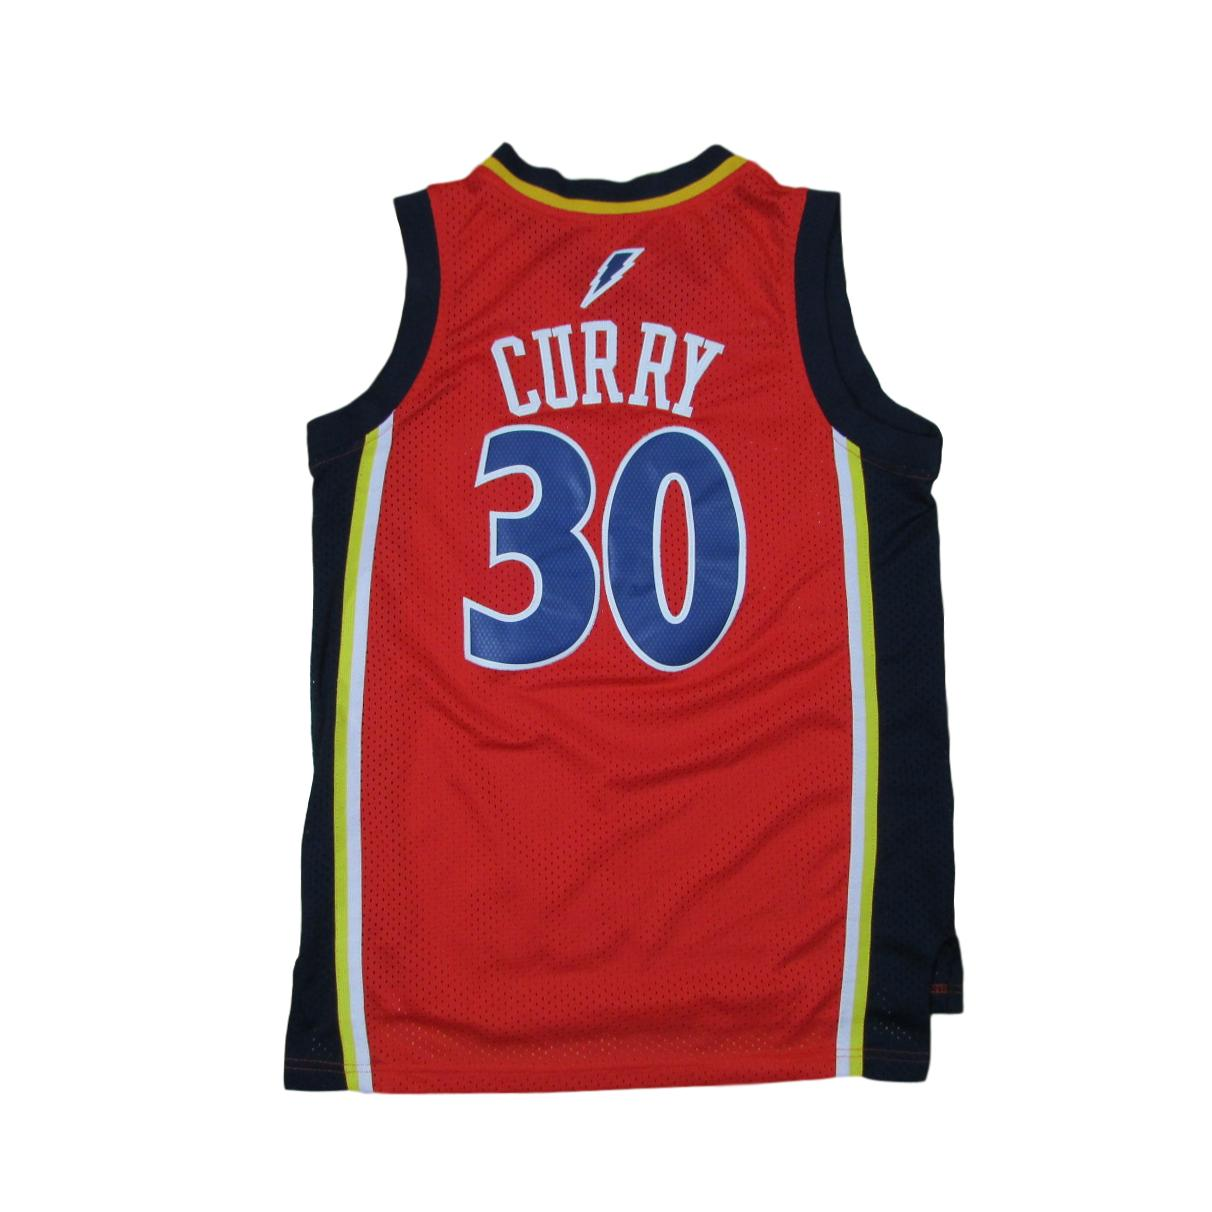 Golden State Warriors Steph Curry We Believe Edition Basketball Jersey Sz S